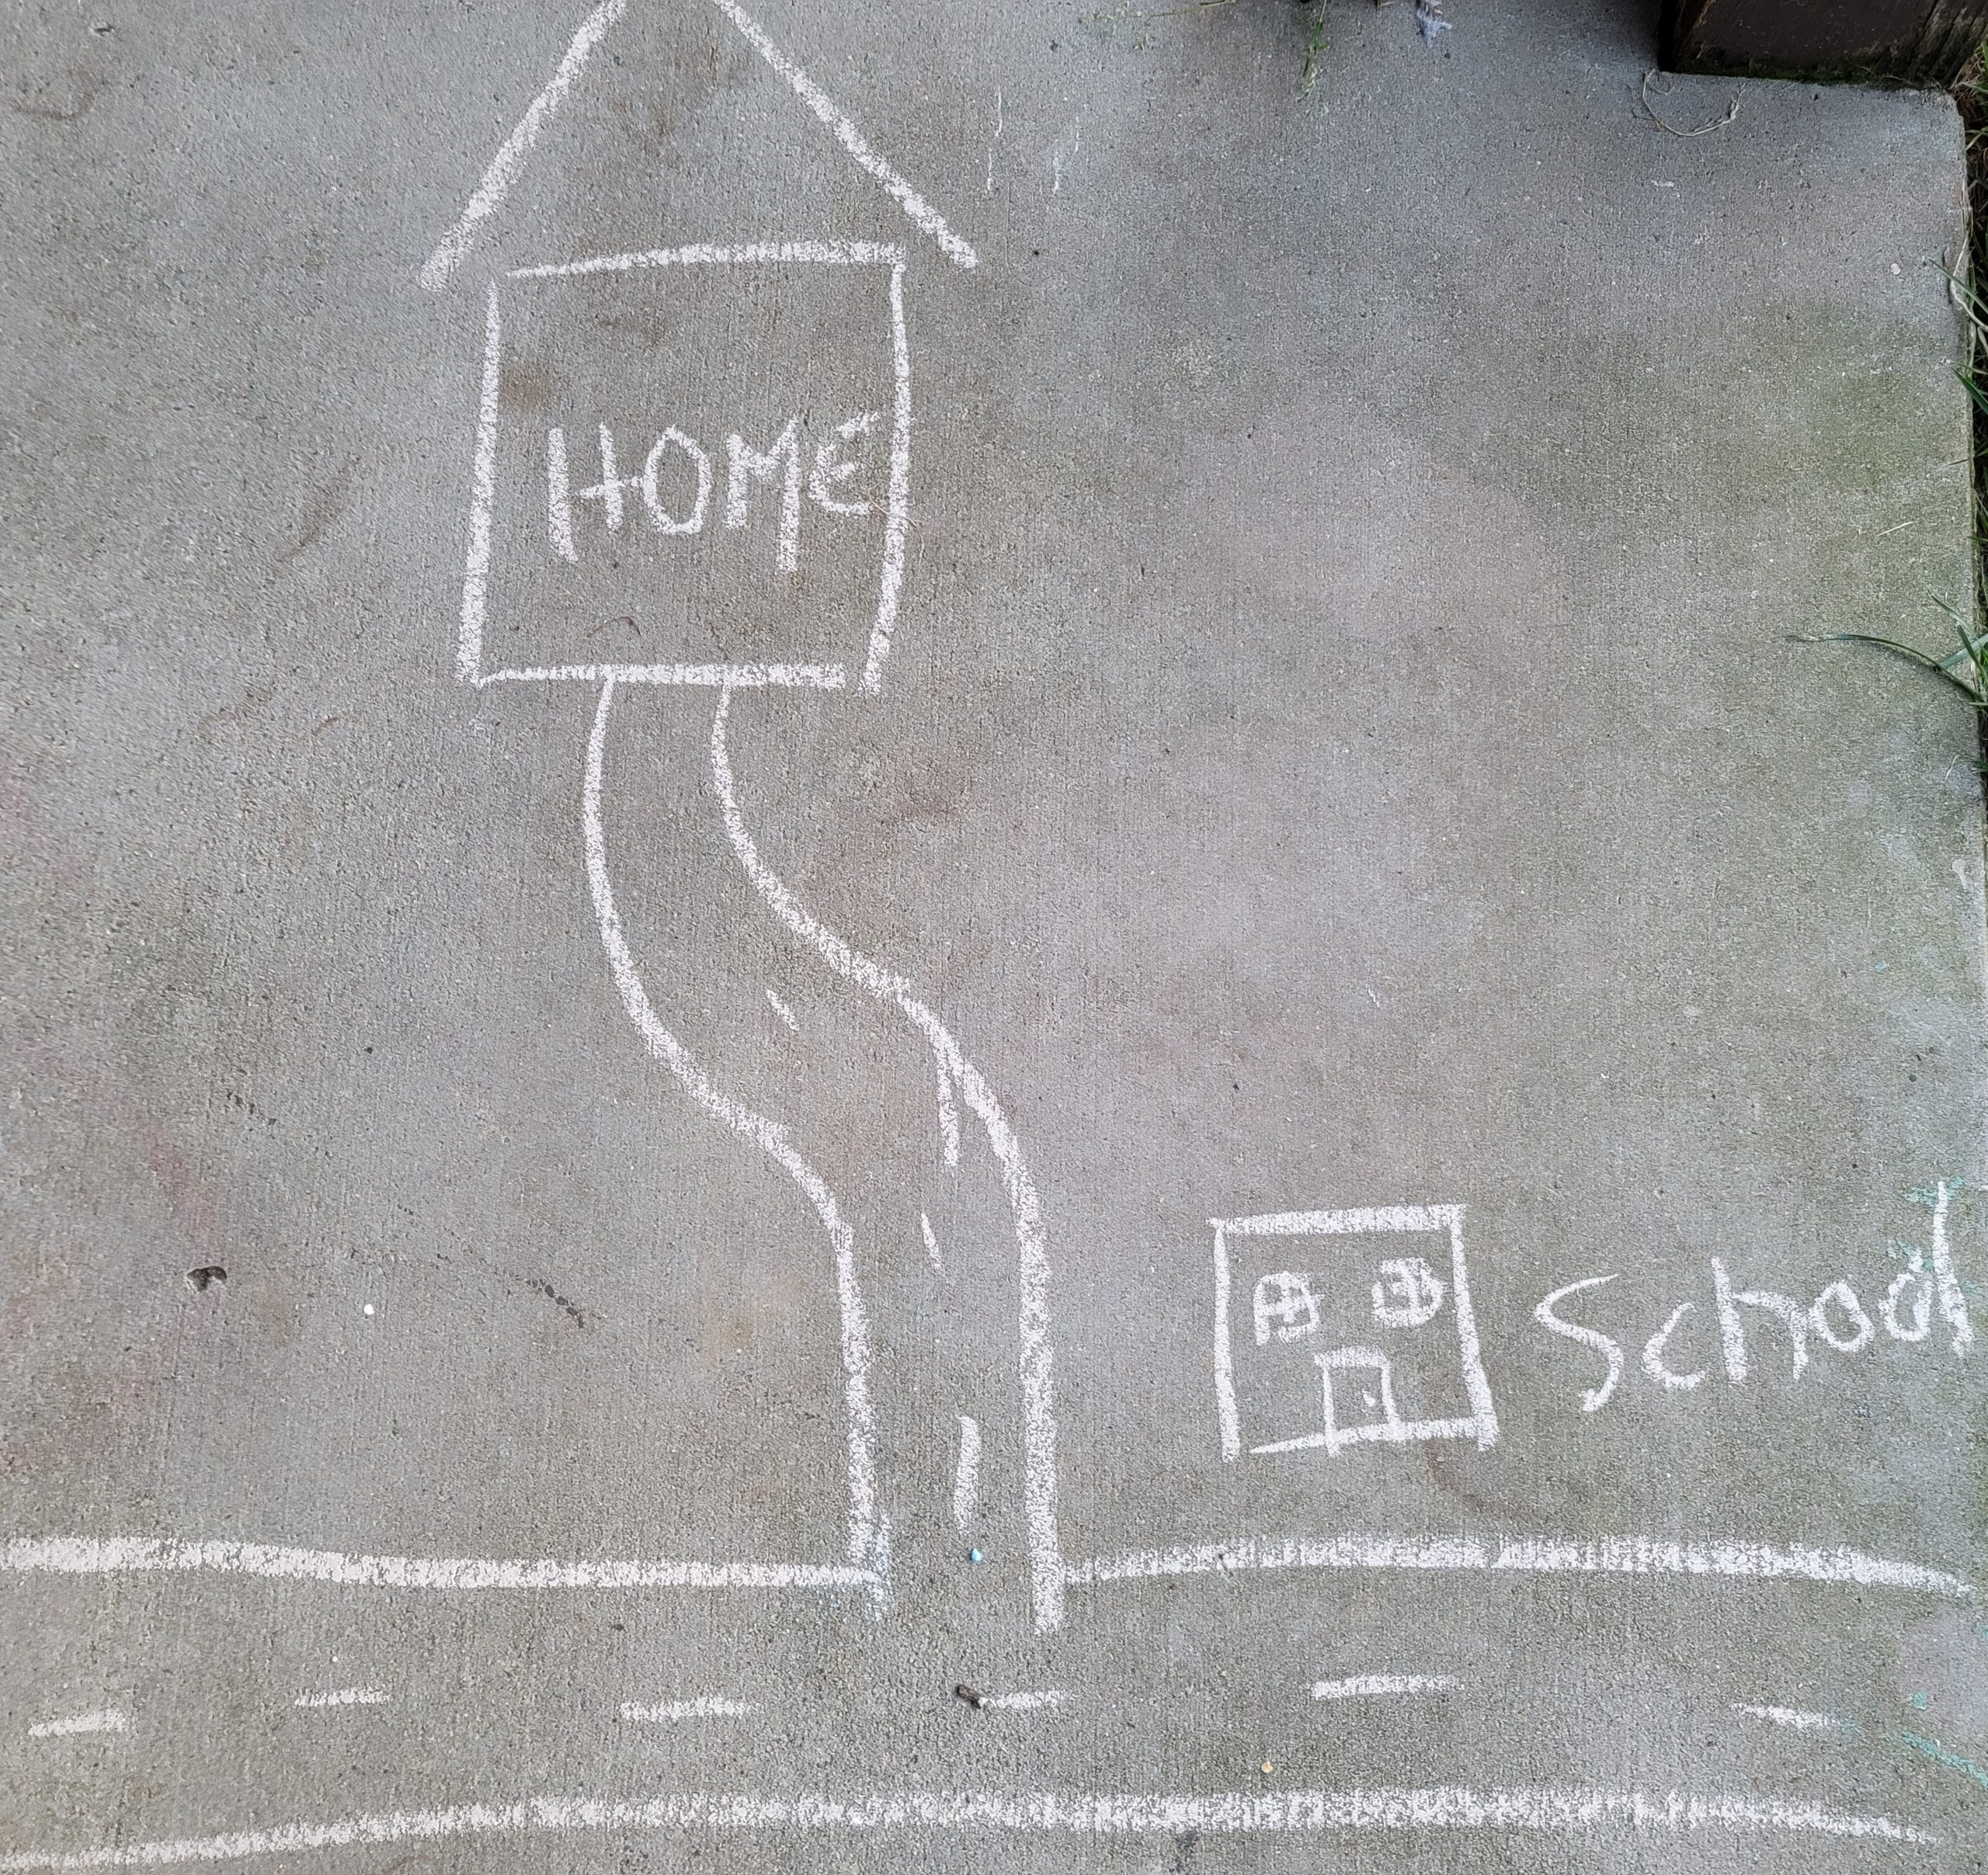 City map drawn in chalk